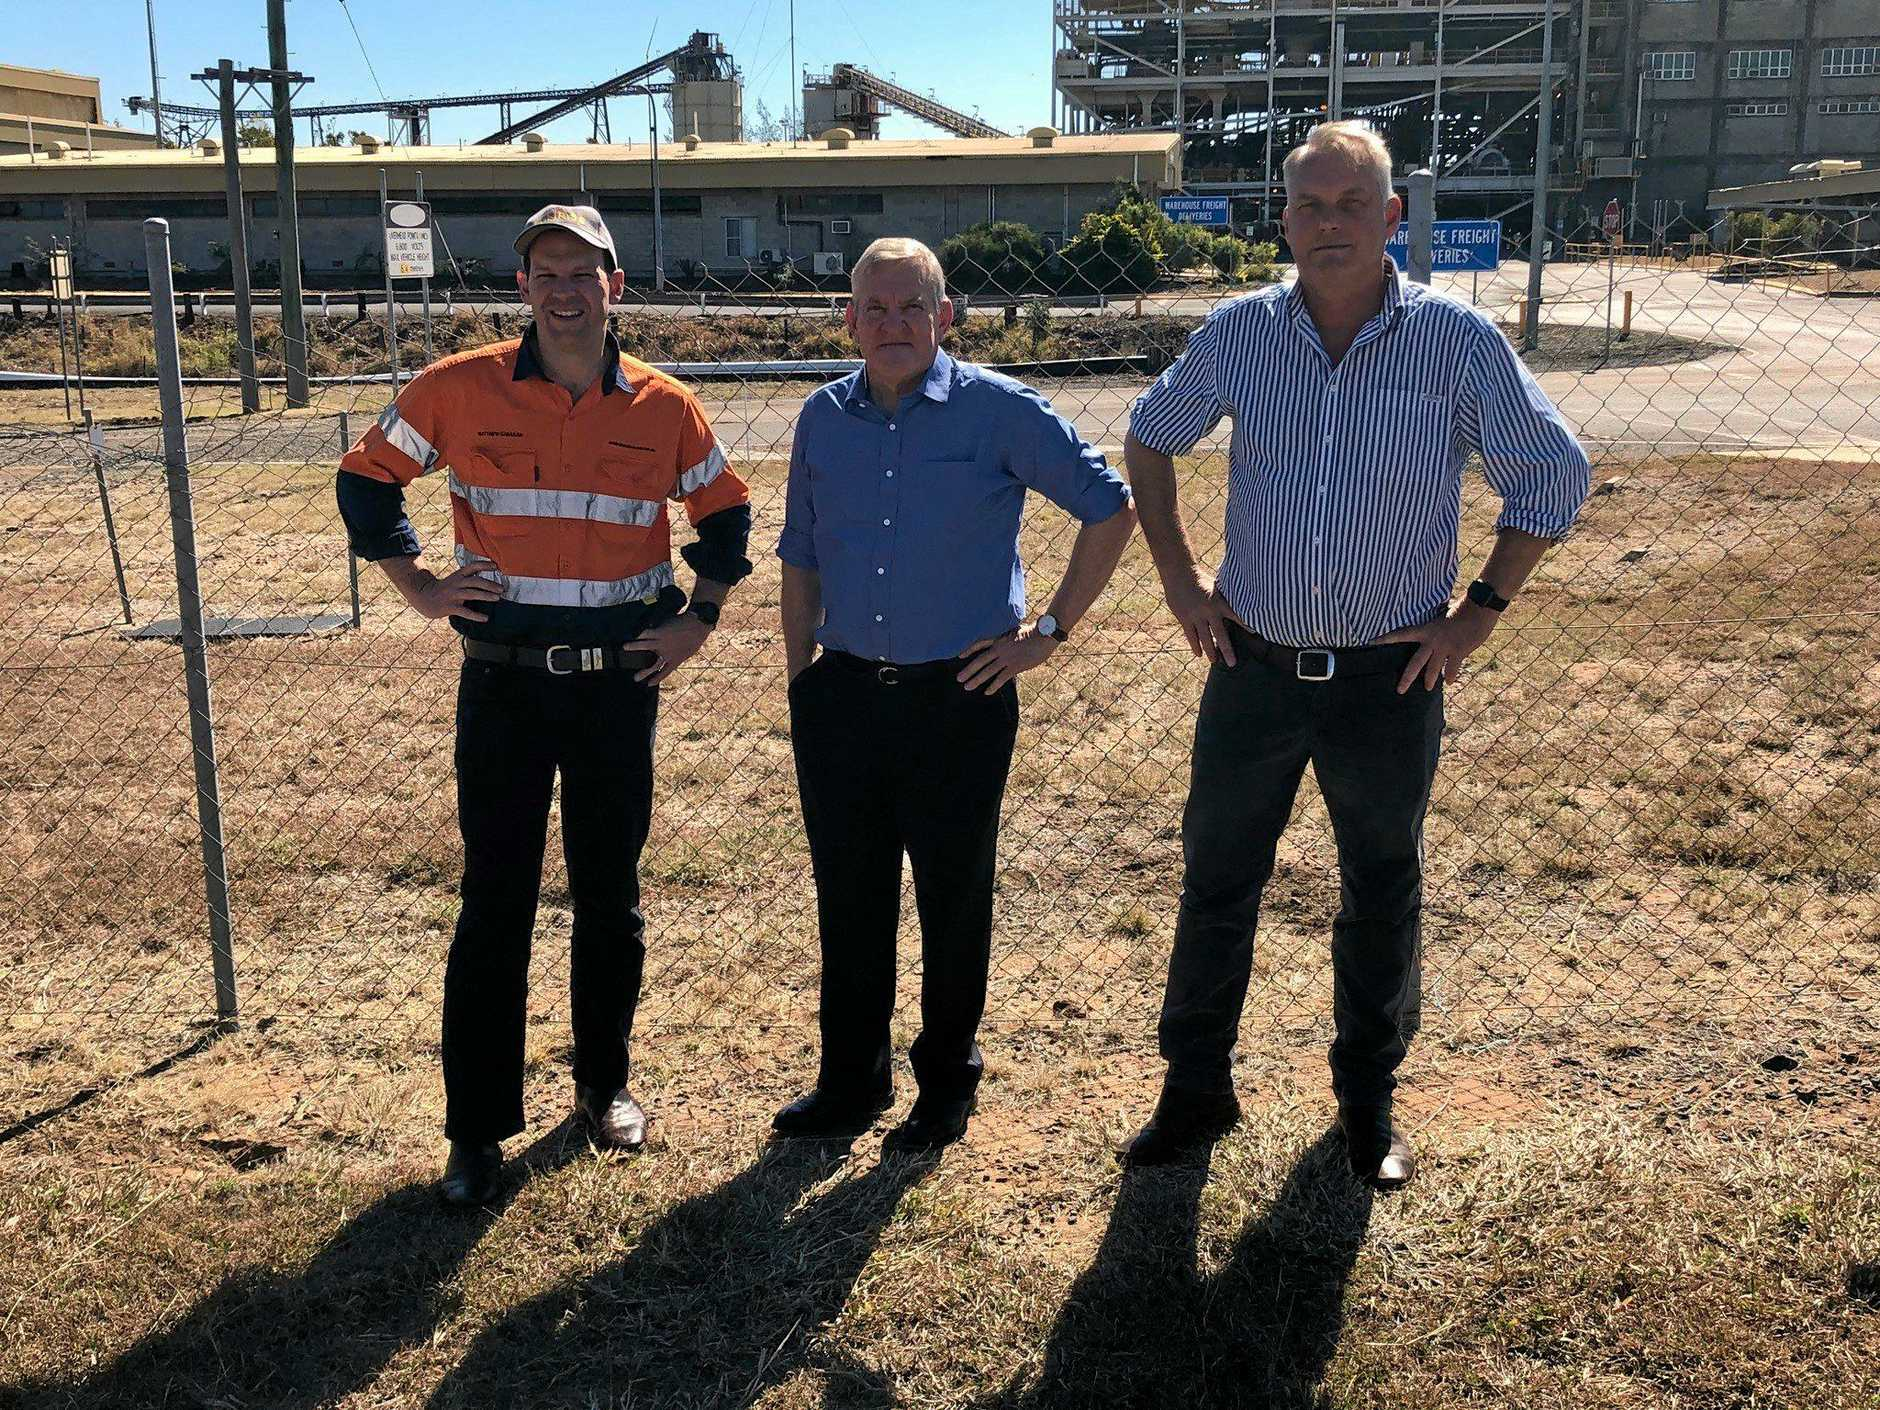 SALE FINALISED: Minister for Resources and Northern Australia Matt Canavan, Queensland Resources Council Chief Executive Ian Macfarlane and Member for Gregory Lachlan Millar at the Gregory Crinum Mine in 2018.